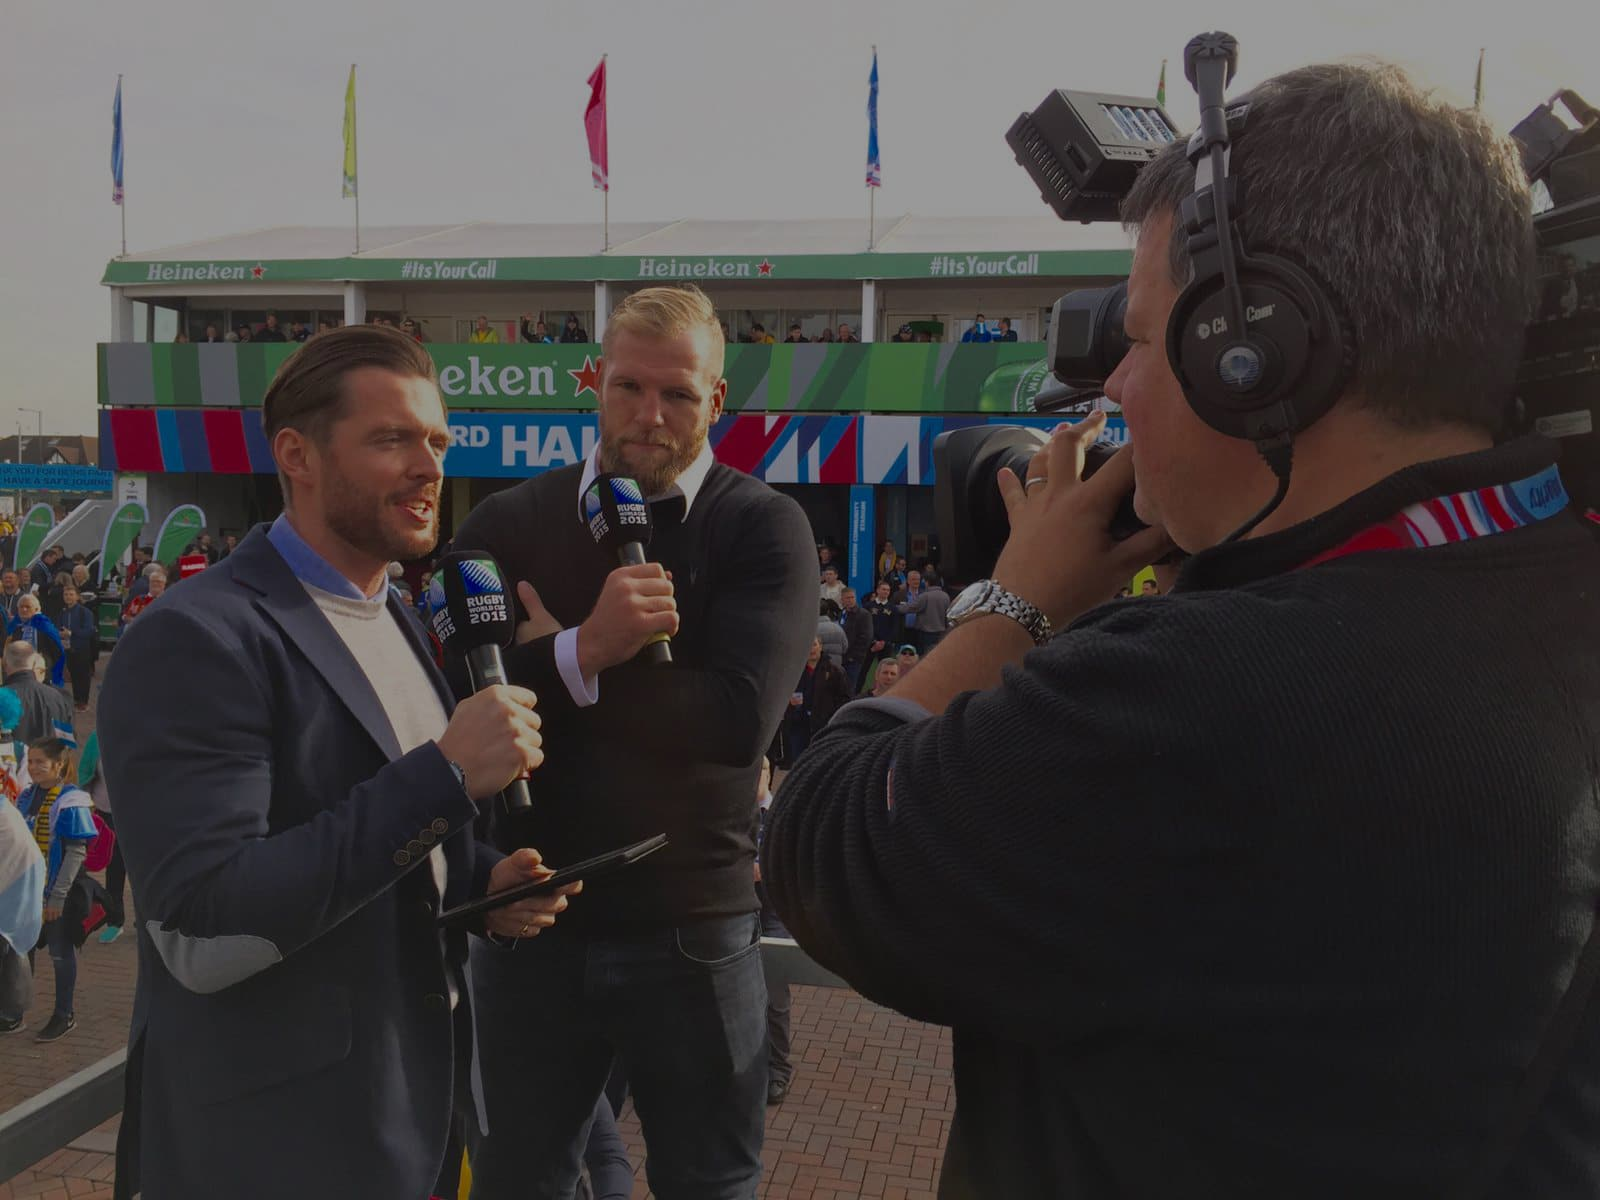 mark behind the camera interviewing two people holding microphones